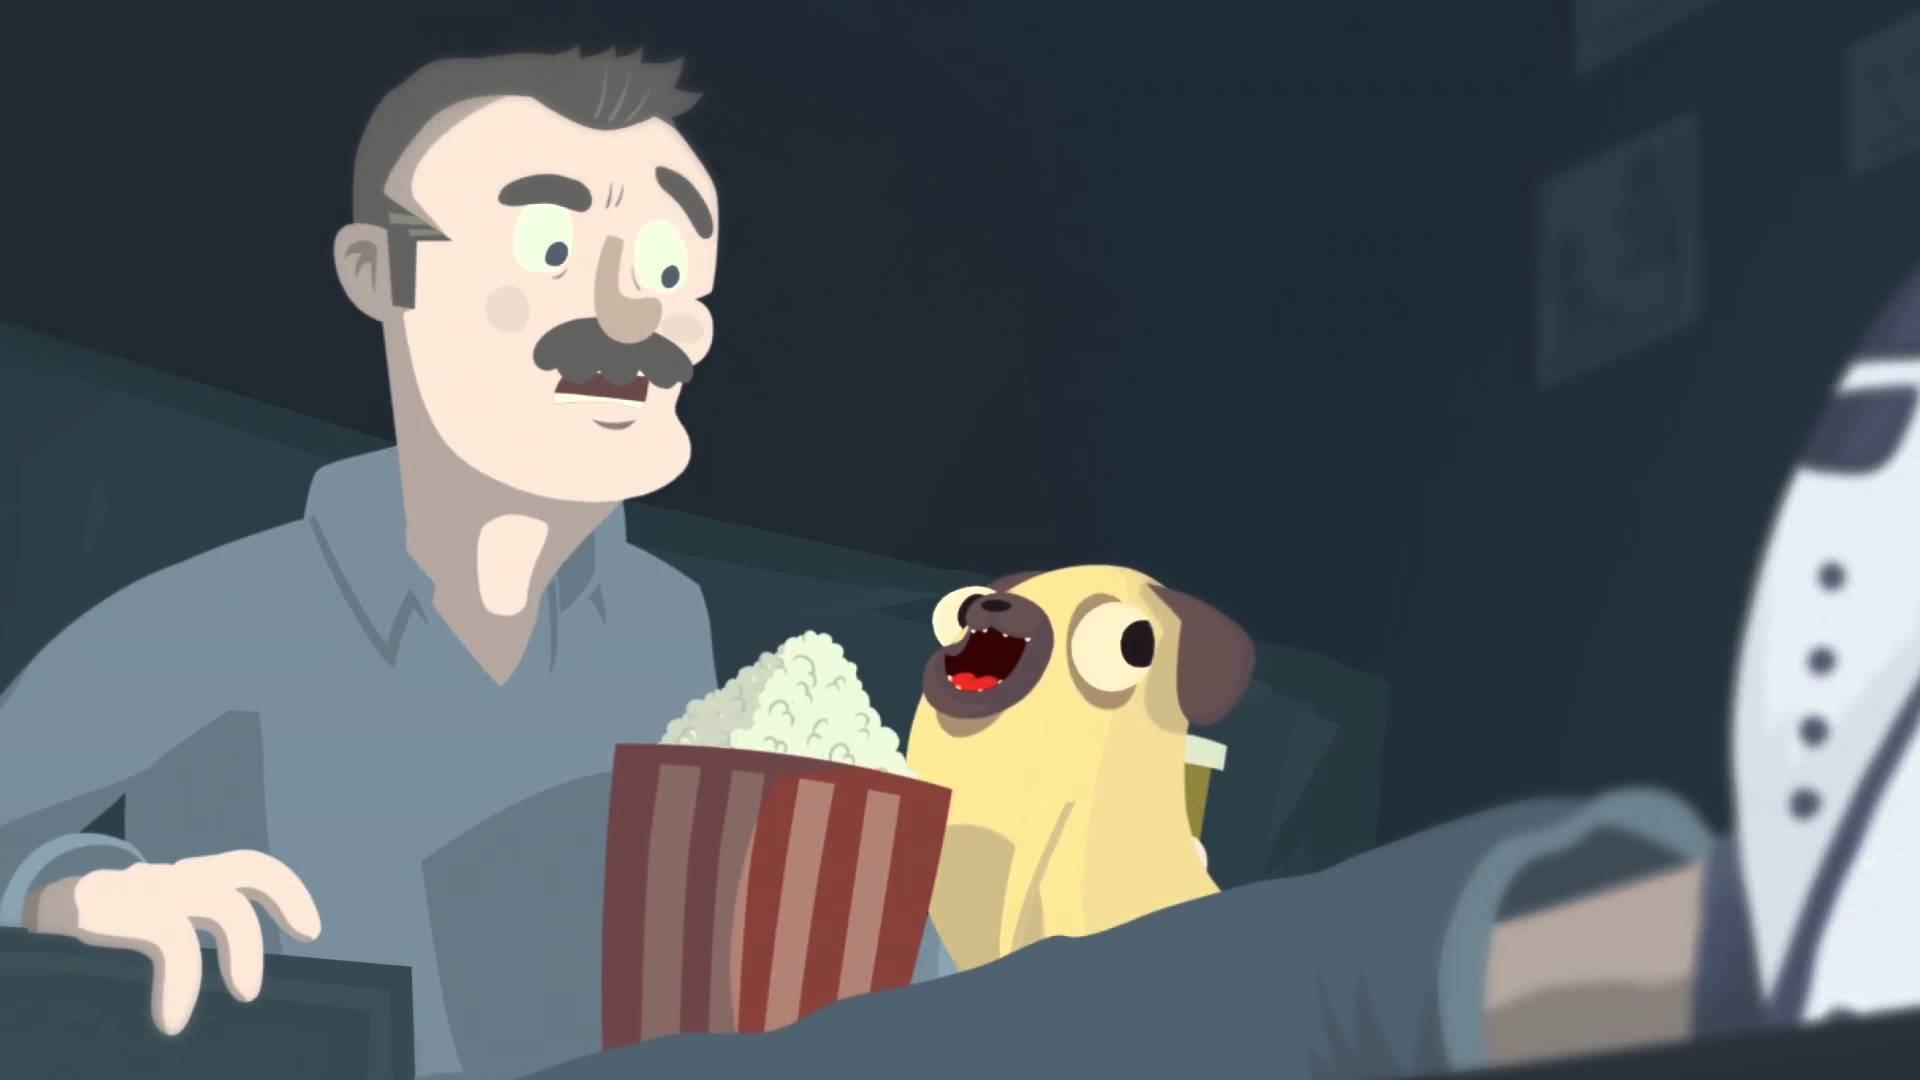 It's Not Rocket Science, A New Animated Comedy Science Series Starring Astronaut Chris Hadfield